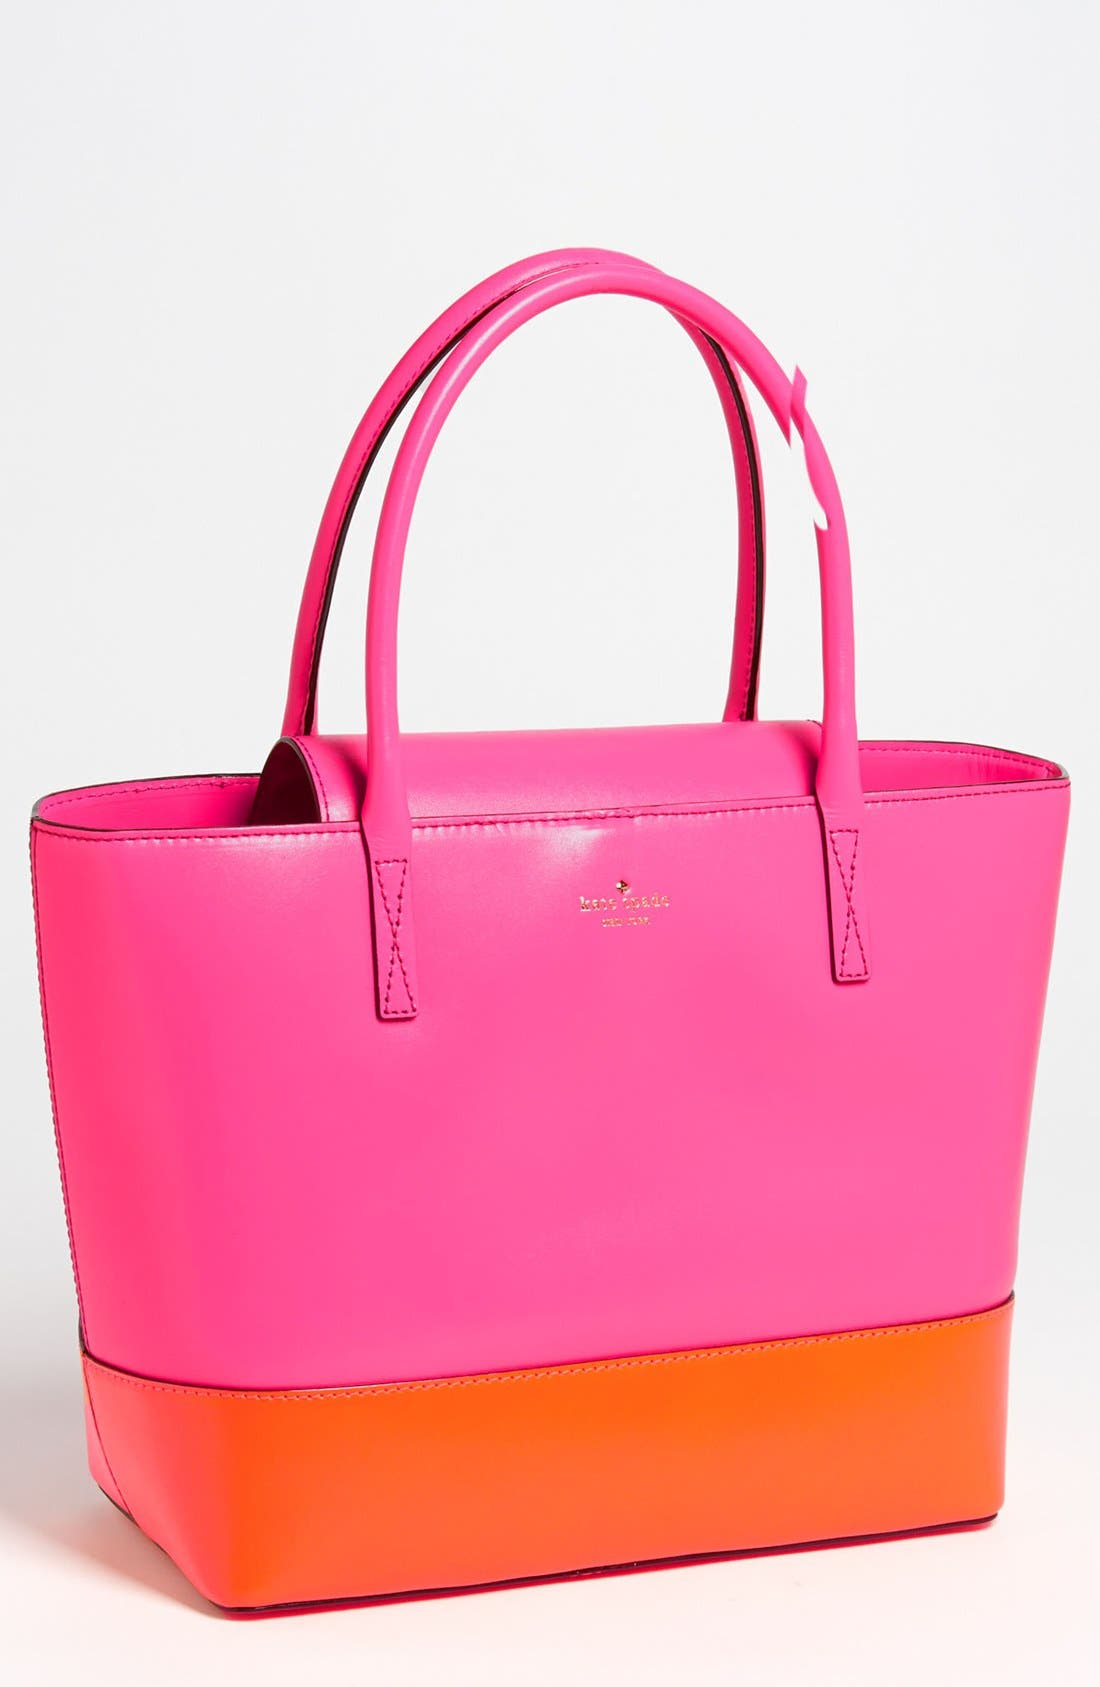 Main Image - kate spade new york 'madison park - small coal' leather tote